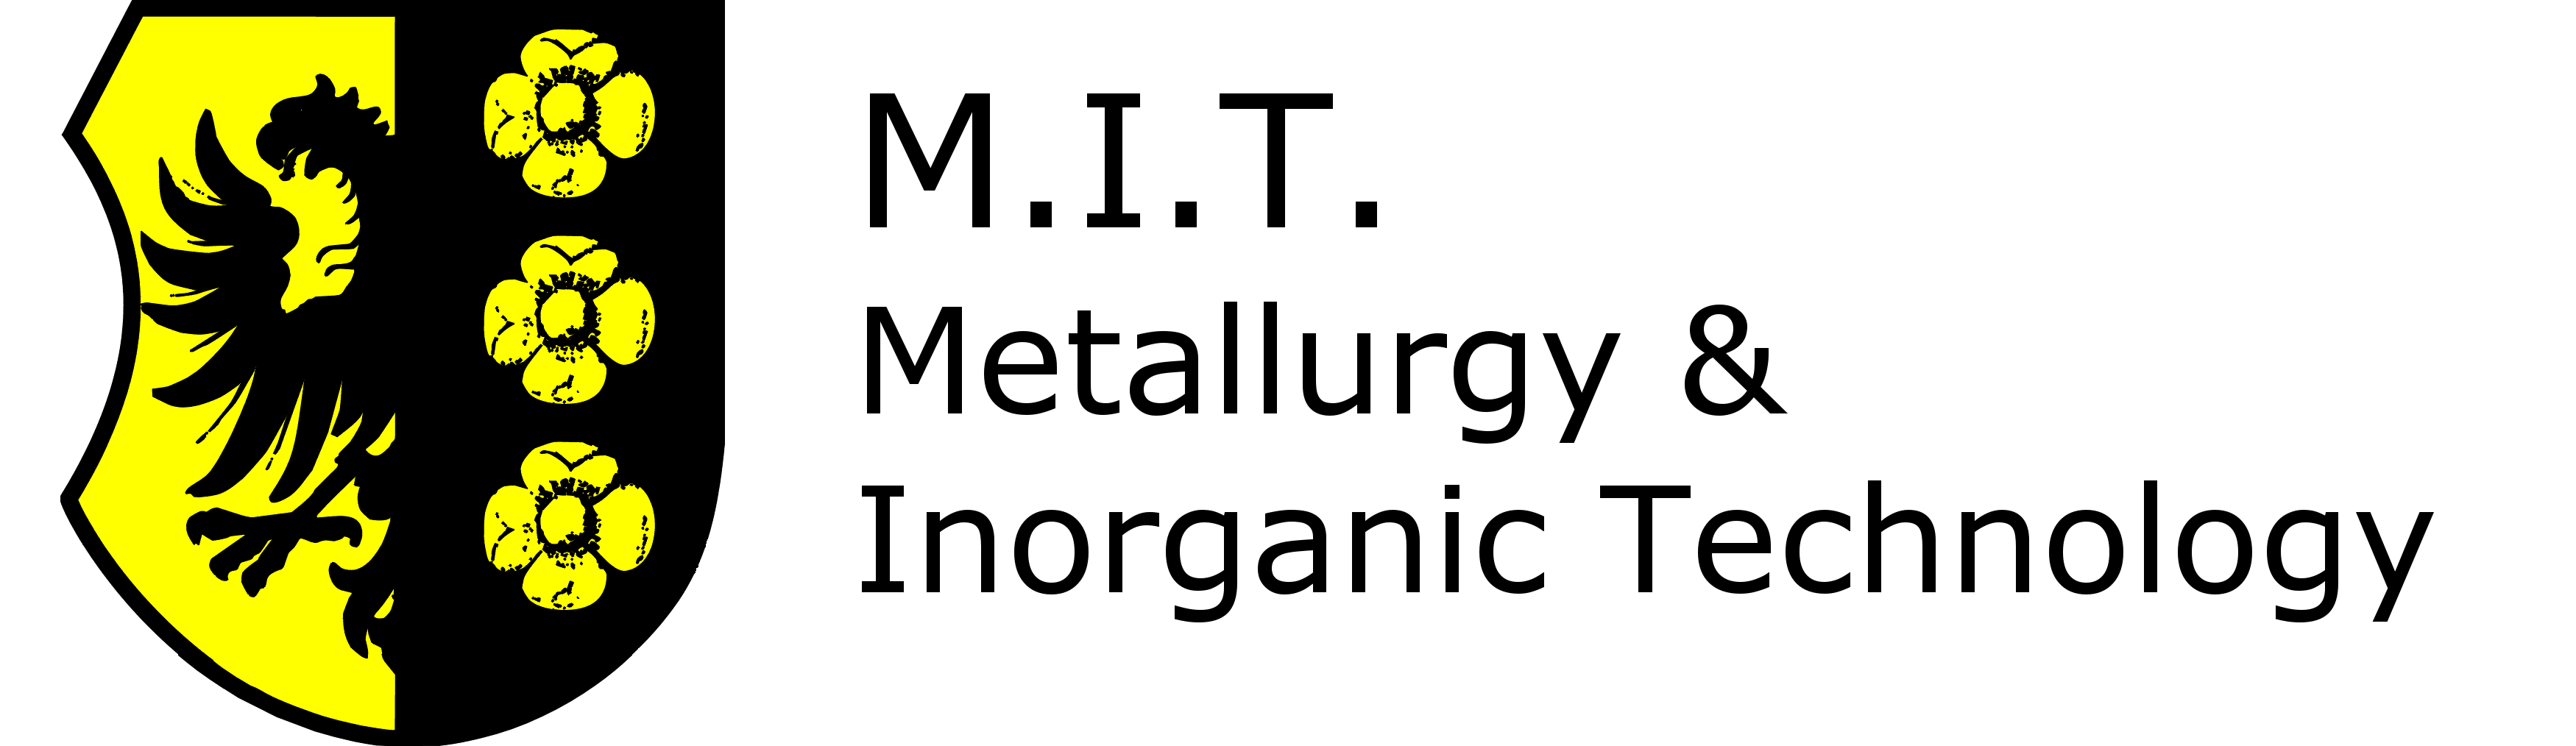 M.I.T. Metallurgy & Inorganic Technology